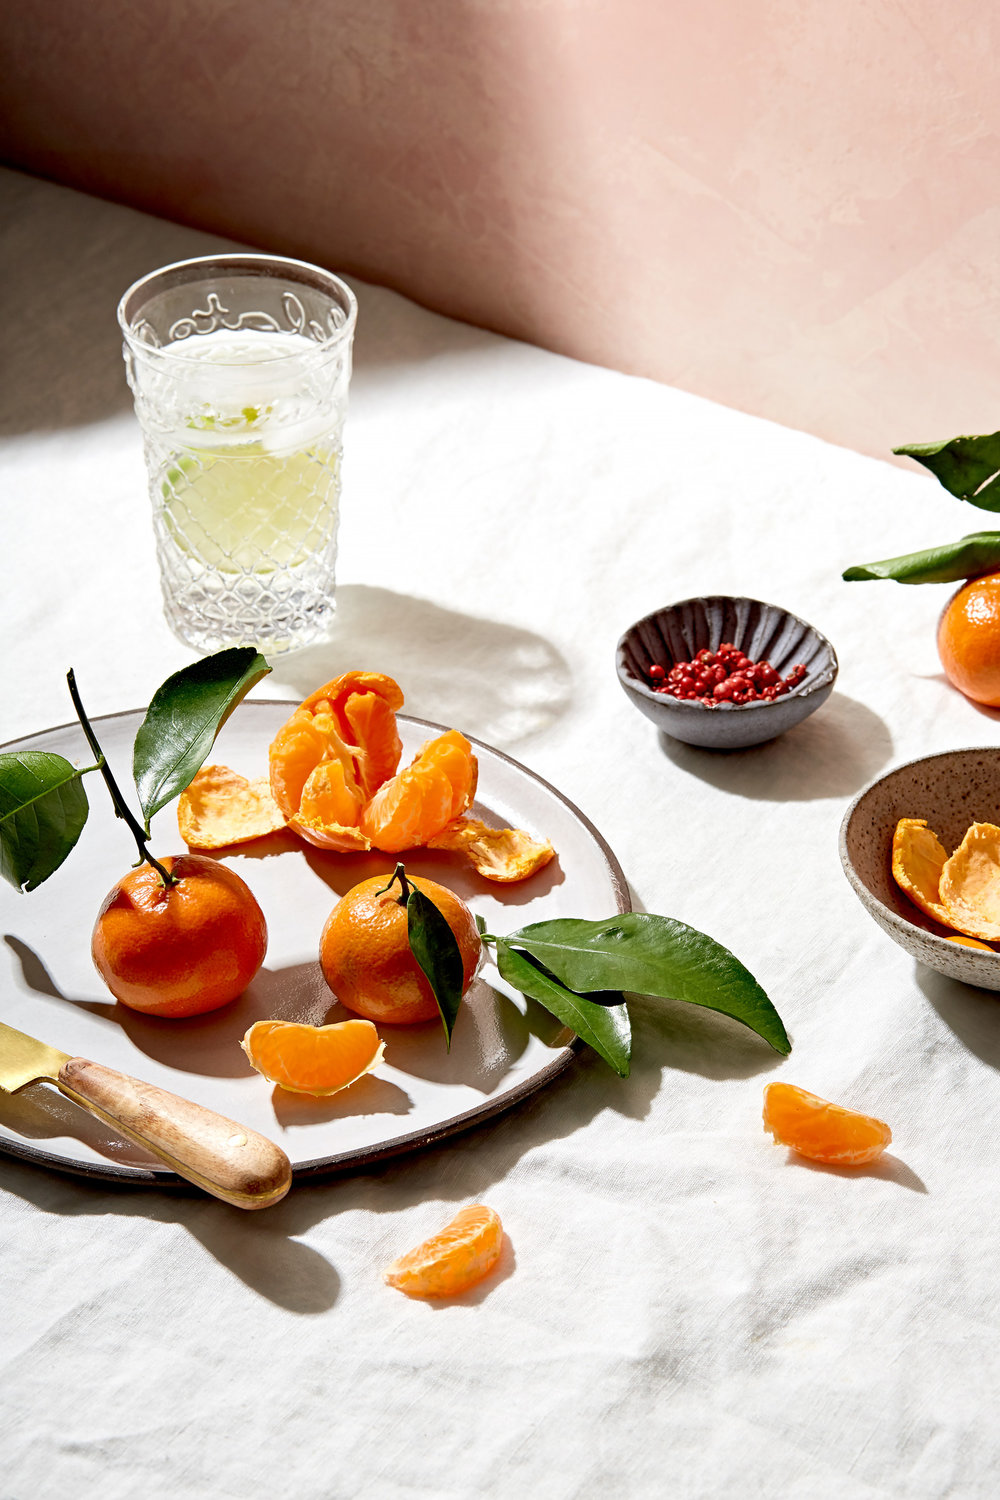 emily hawkes food photographer mandarin oranges